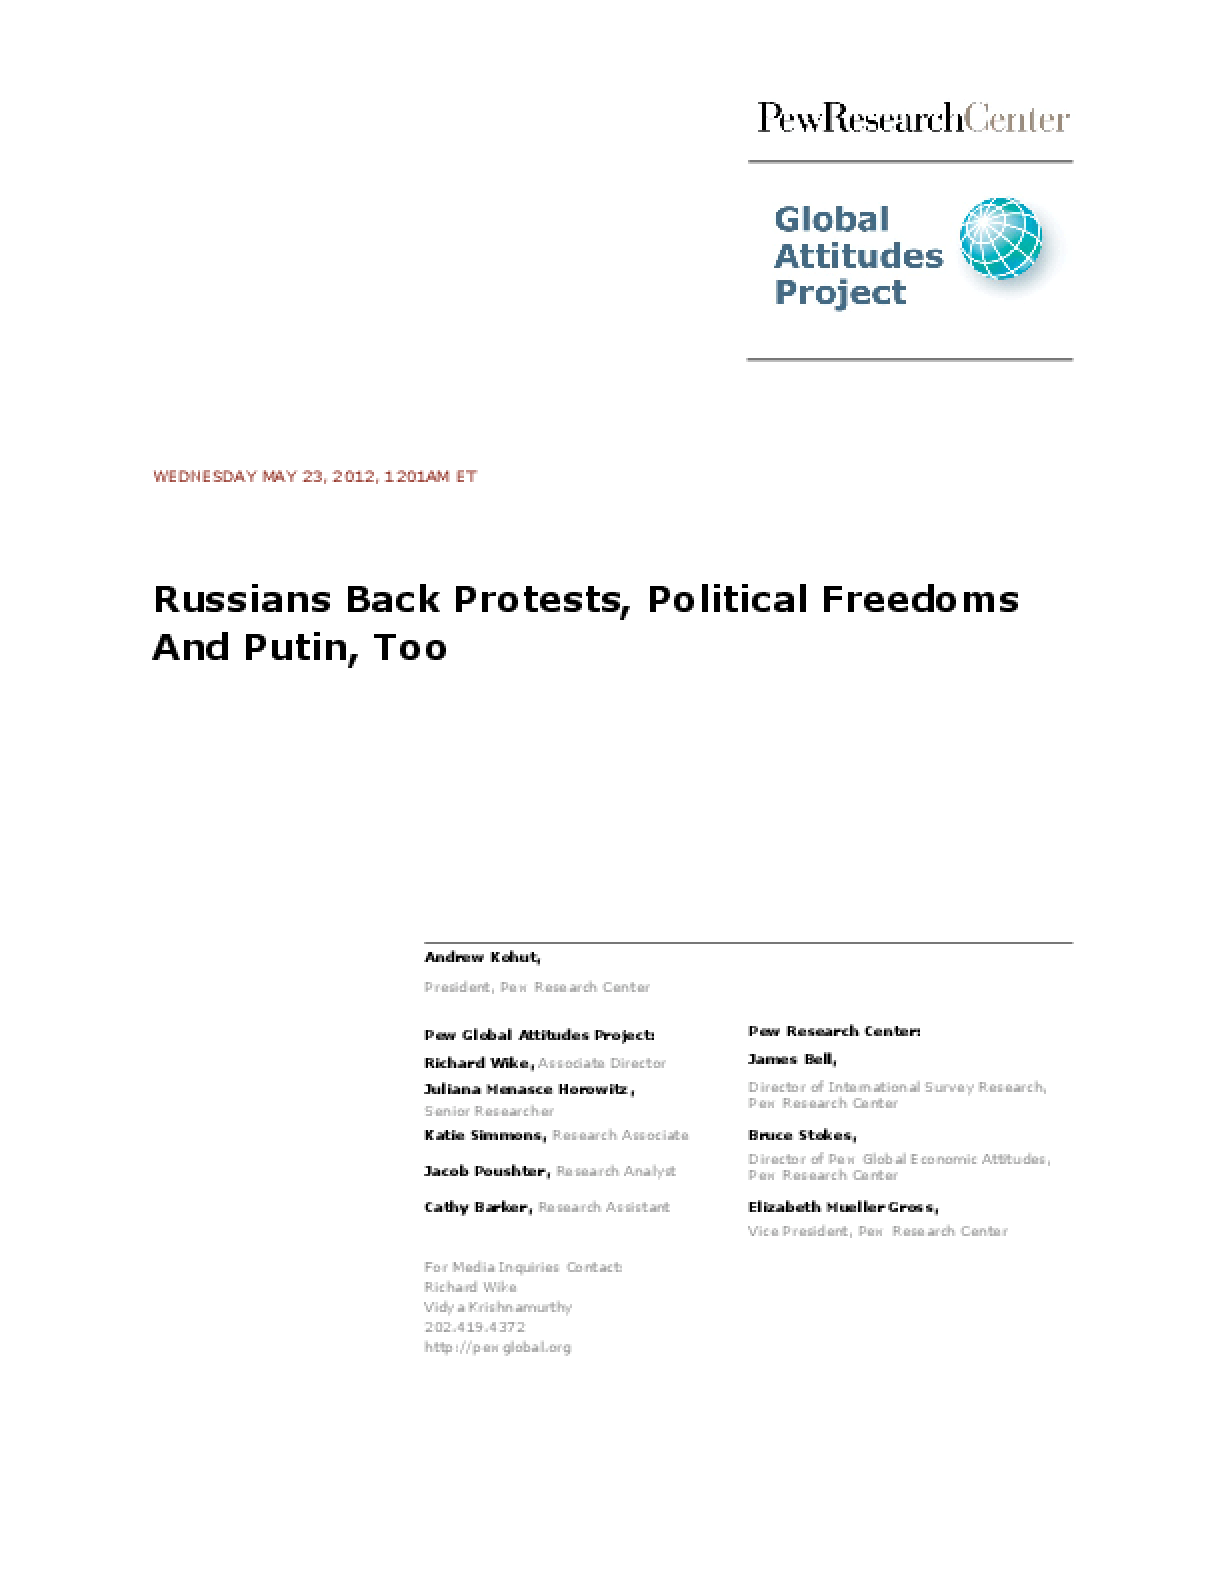 Russians Back Protests, Political Freedoms and Putin, Too